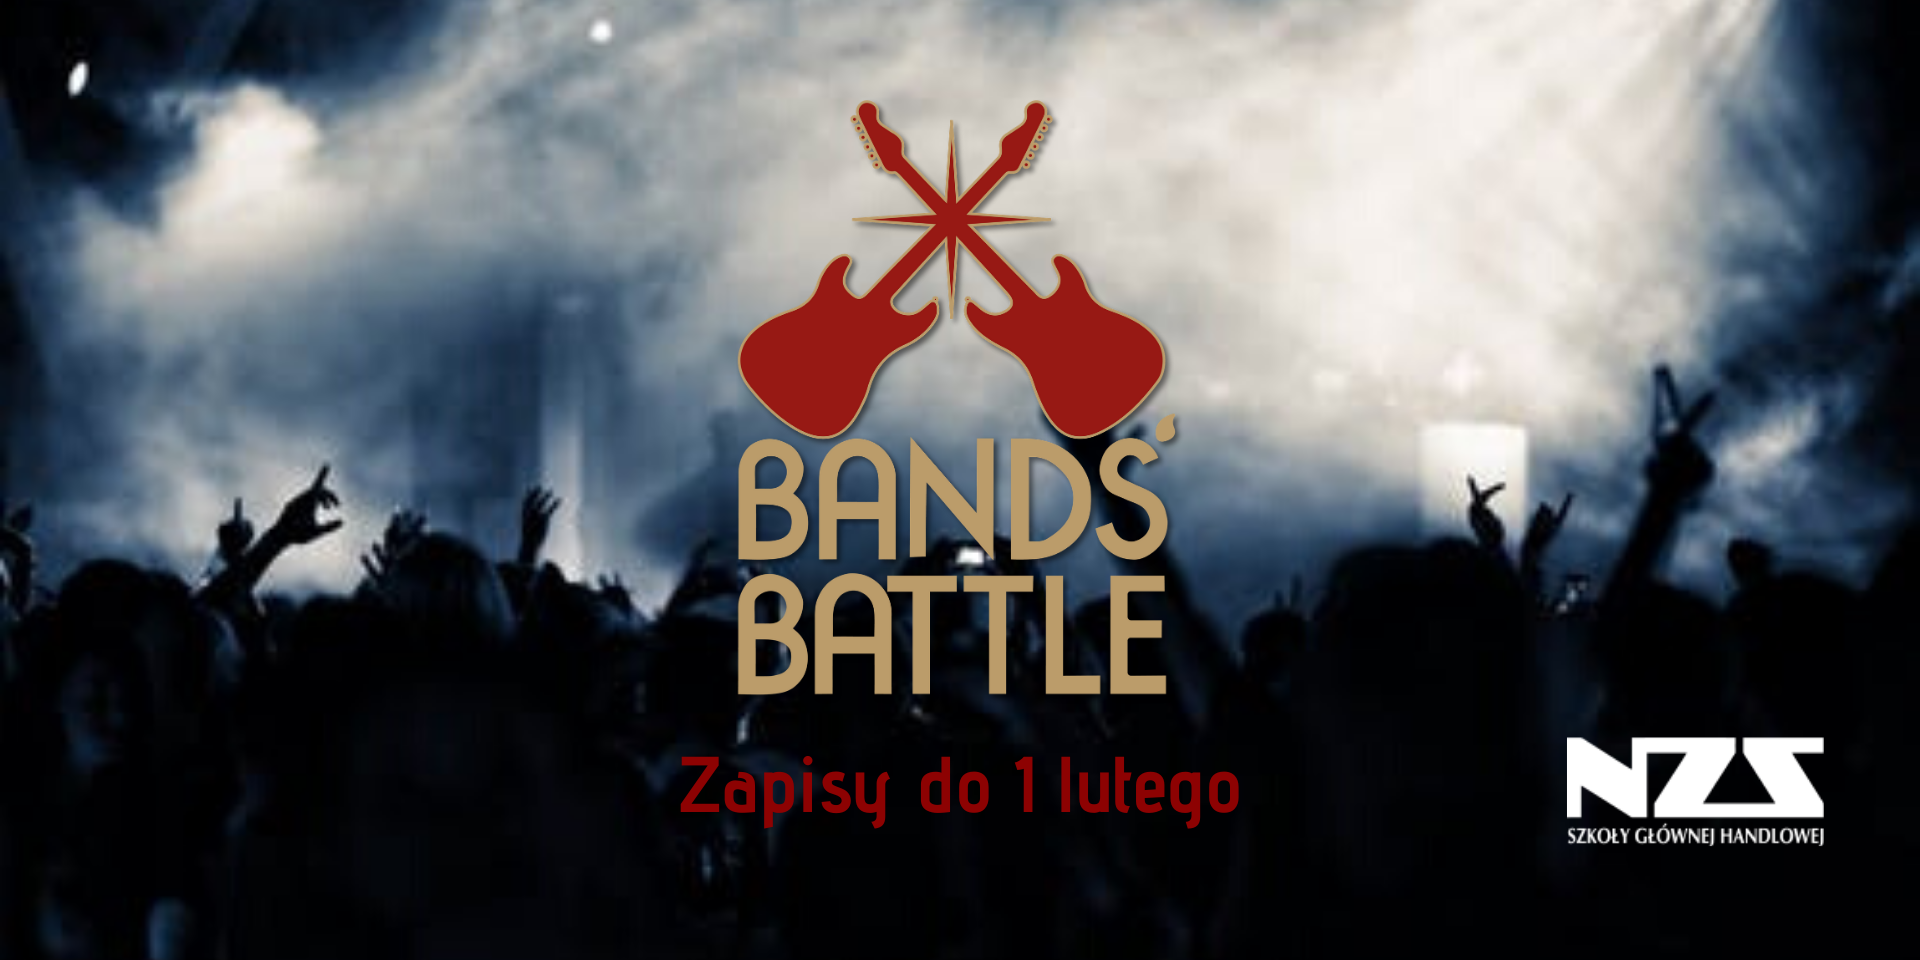 Bands' Battle